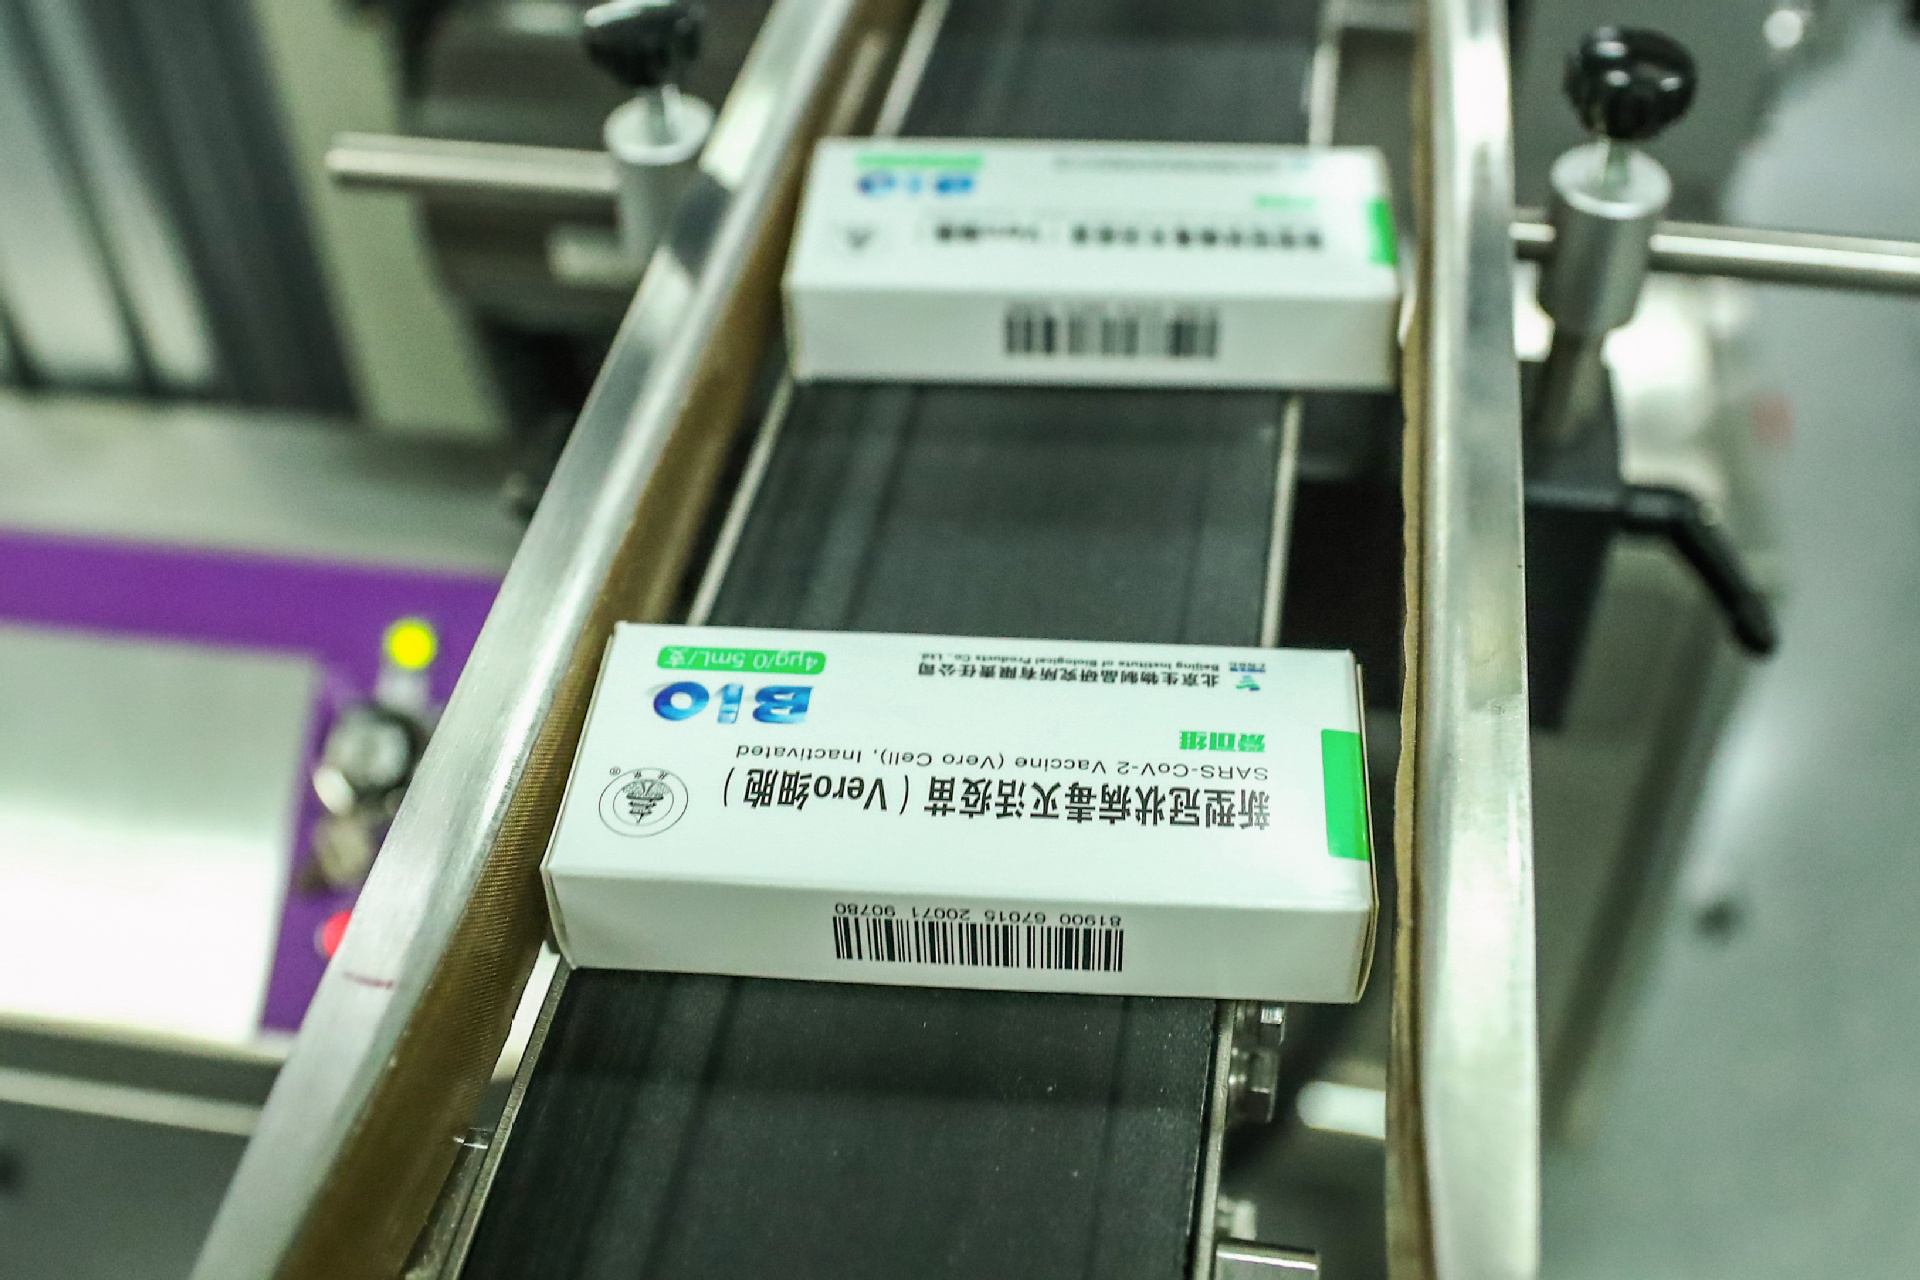 China's COVID vaccines to be produced, distributed under strict management